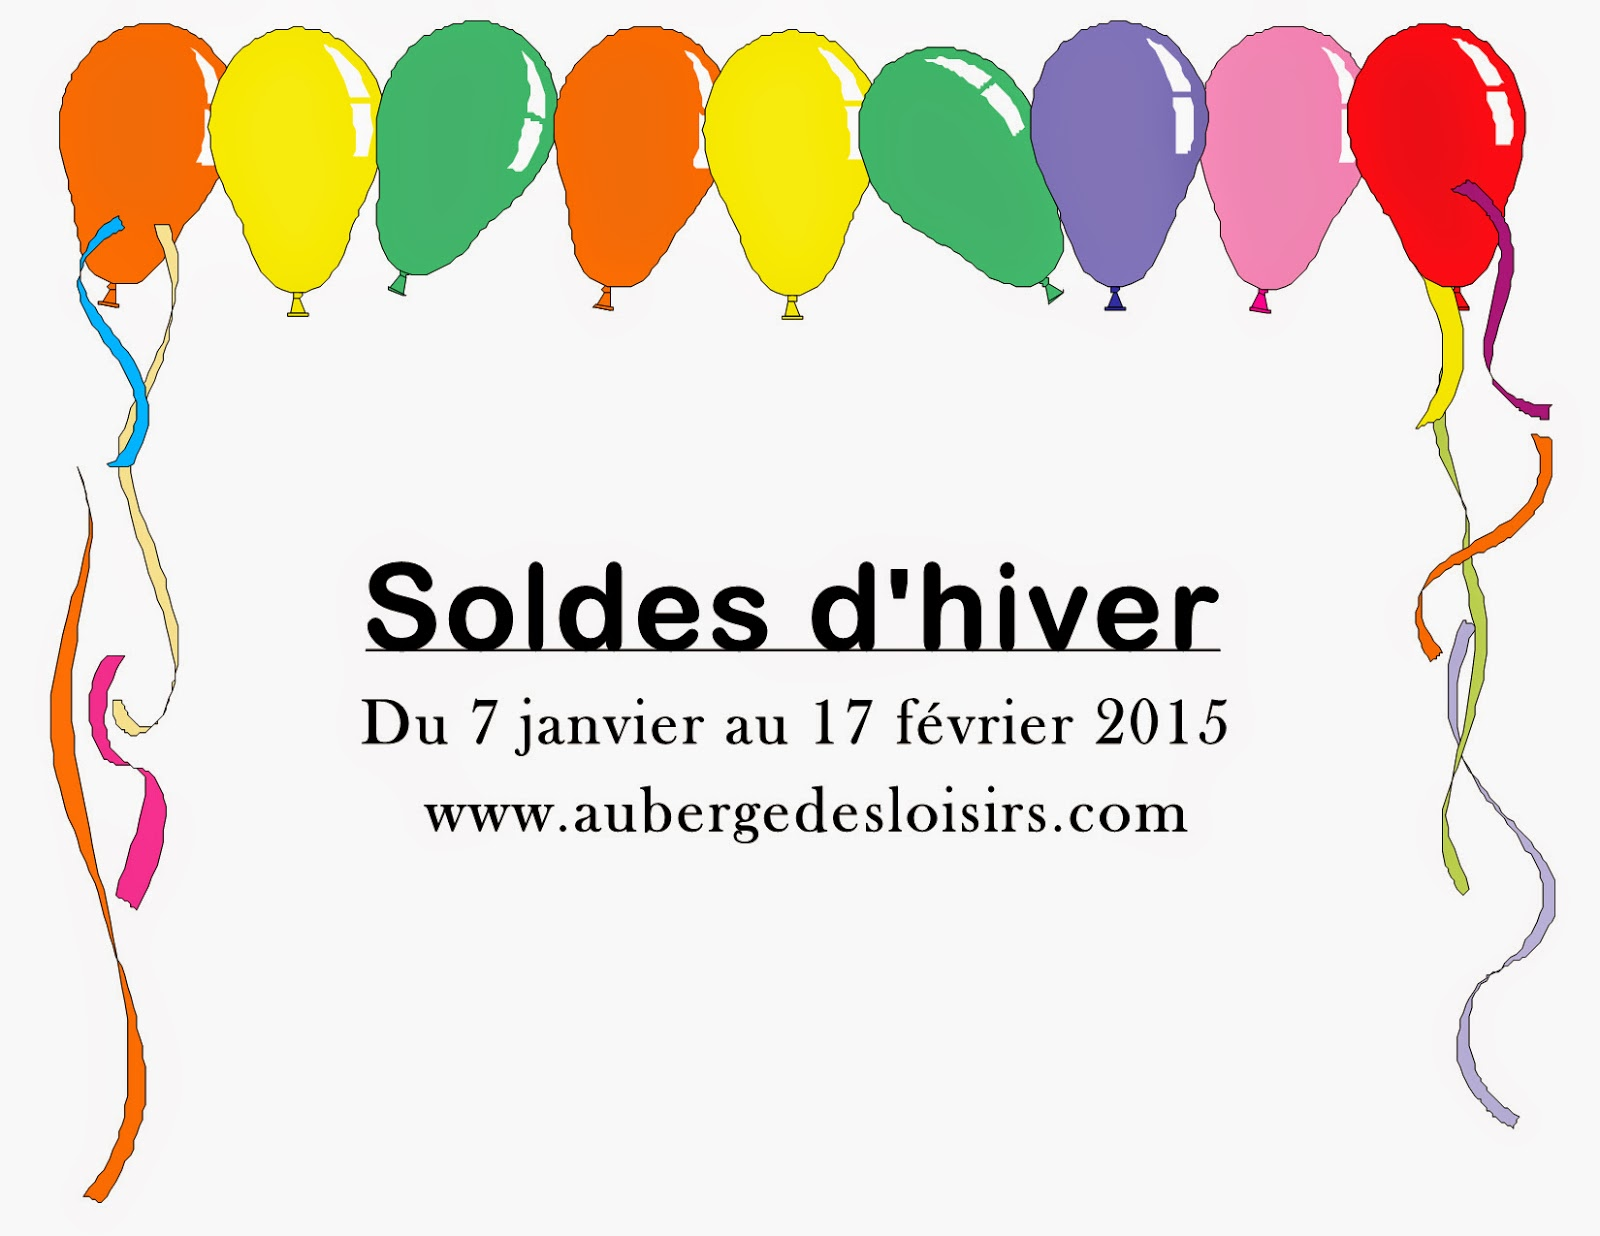 http://www.aubergedesloisirs.com